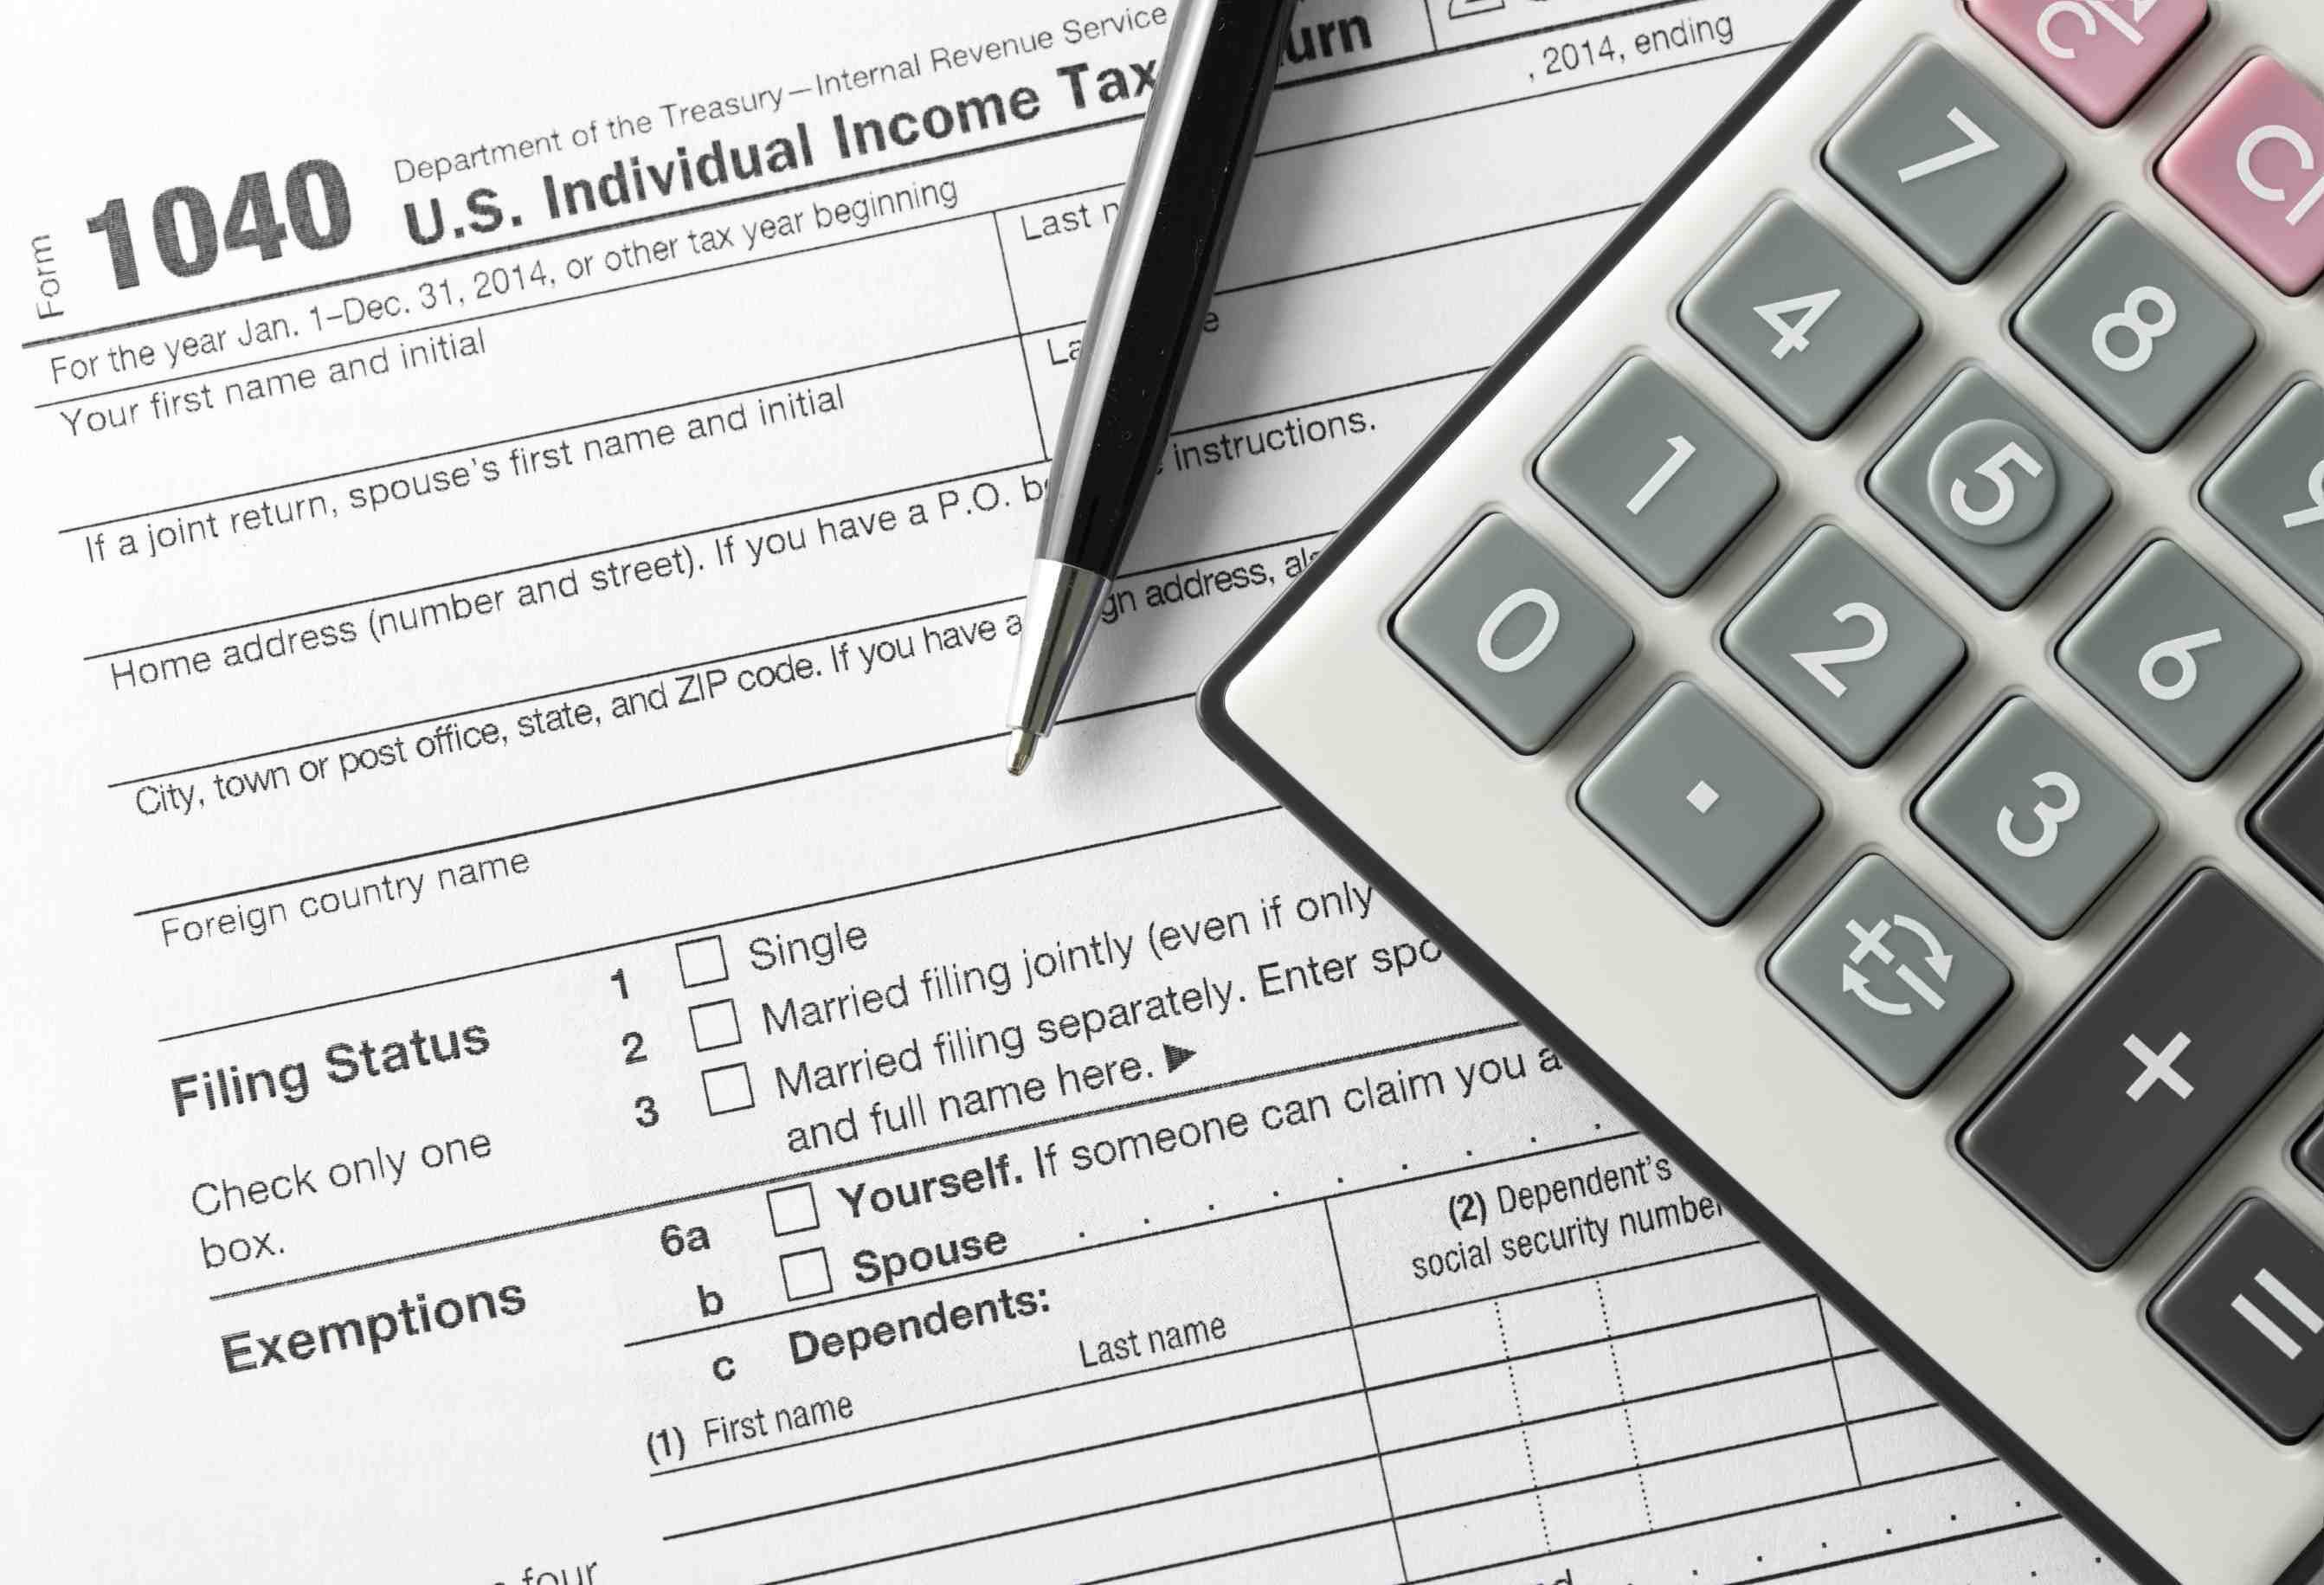 Maintaining tax accounting